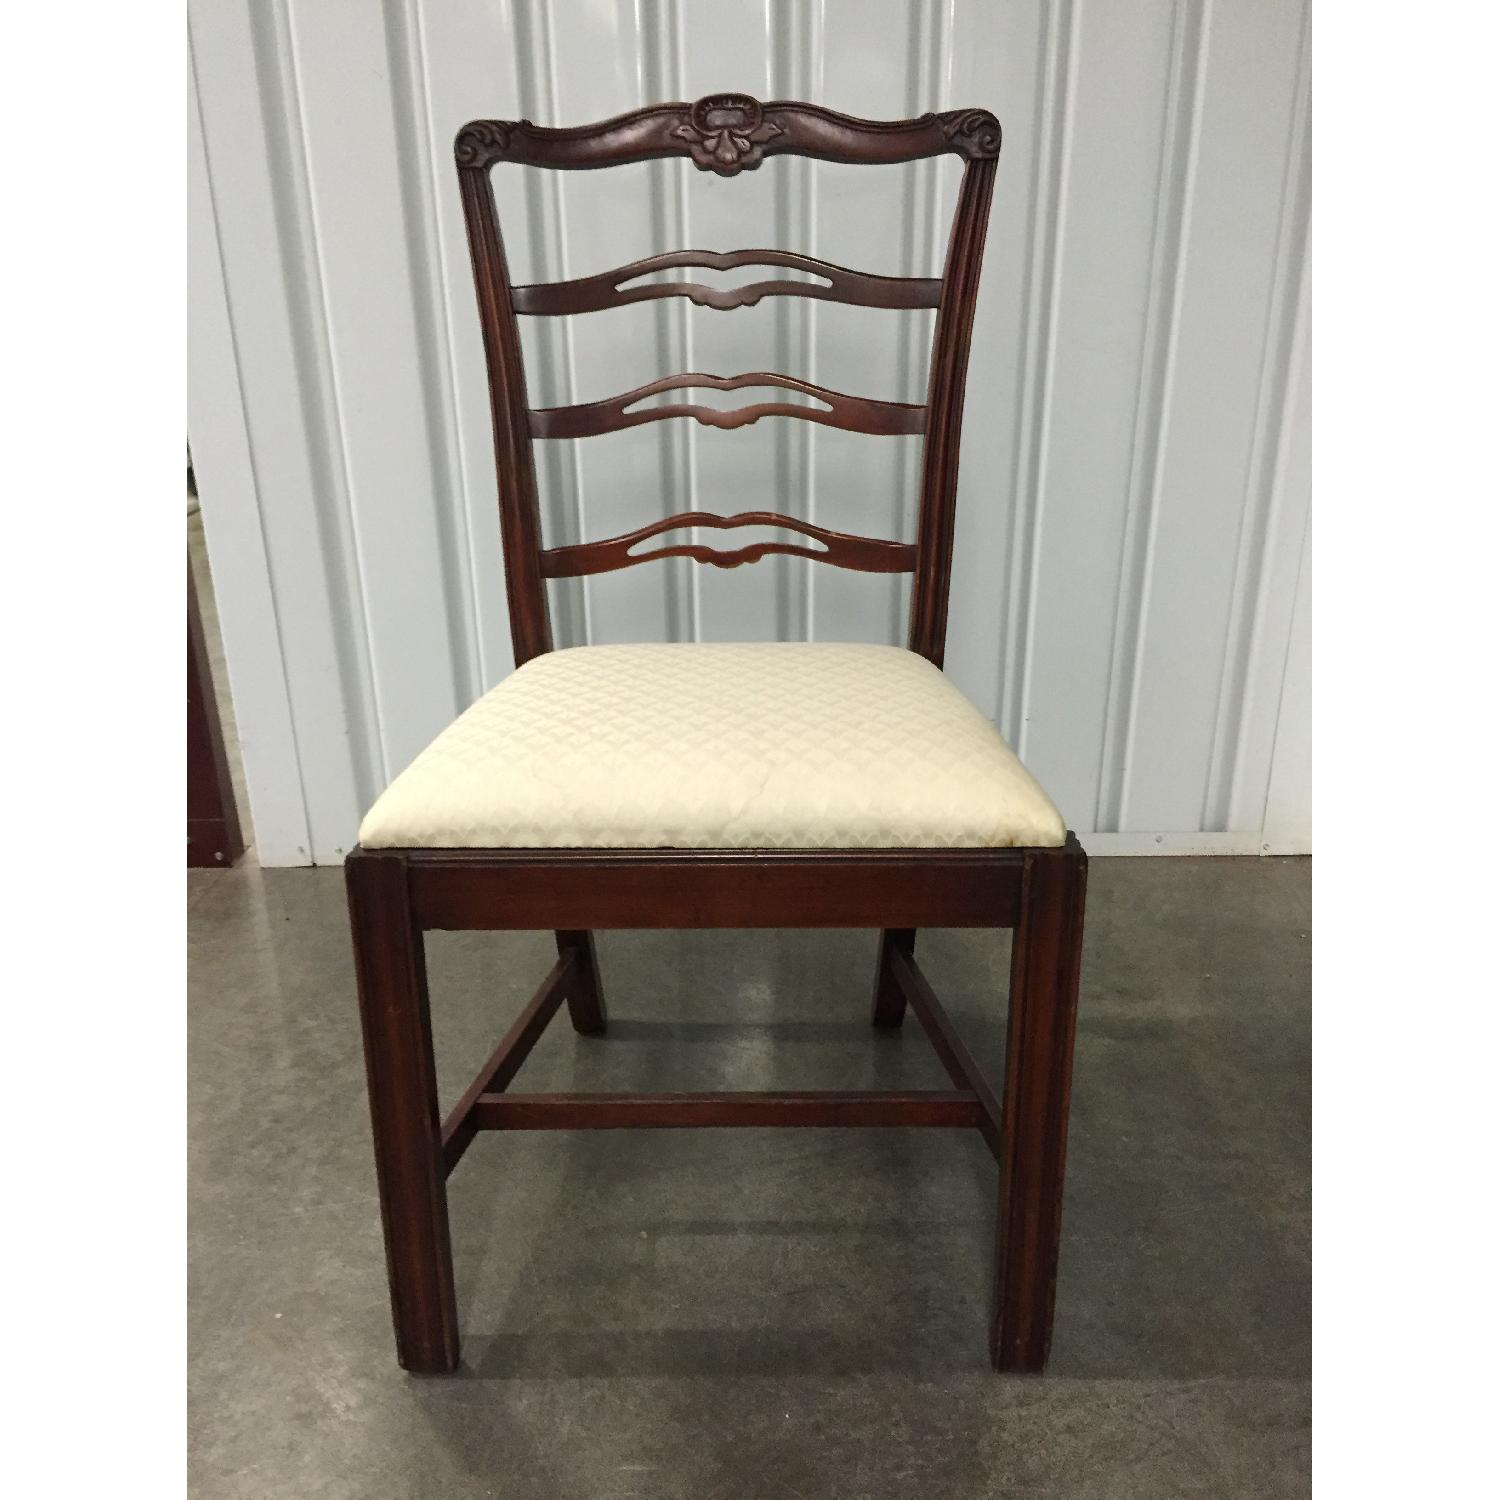 Antique Dining Room Chairs w/ Cherry Wood Frames & Custom Seat Upholstery - Set of 5 - image-1